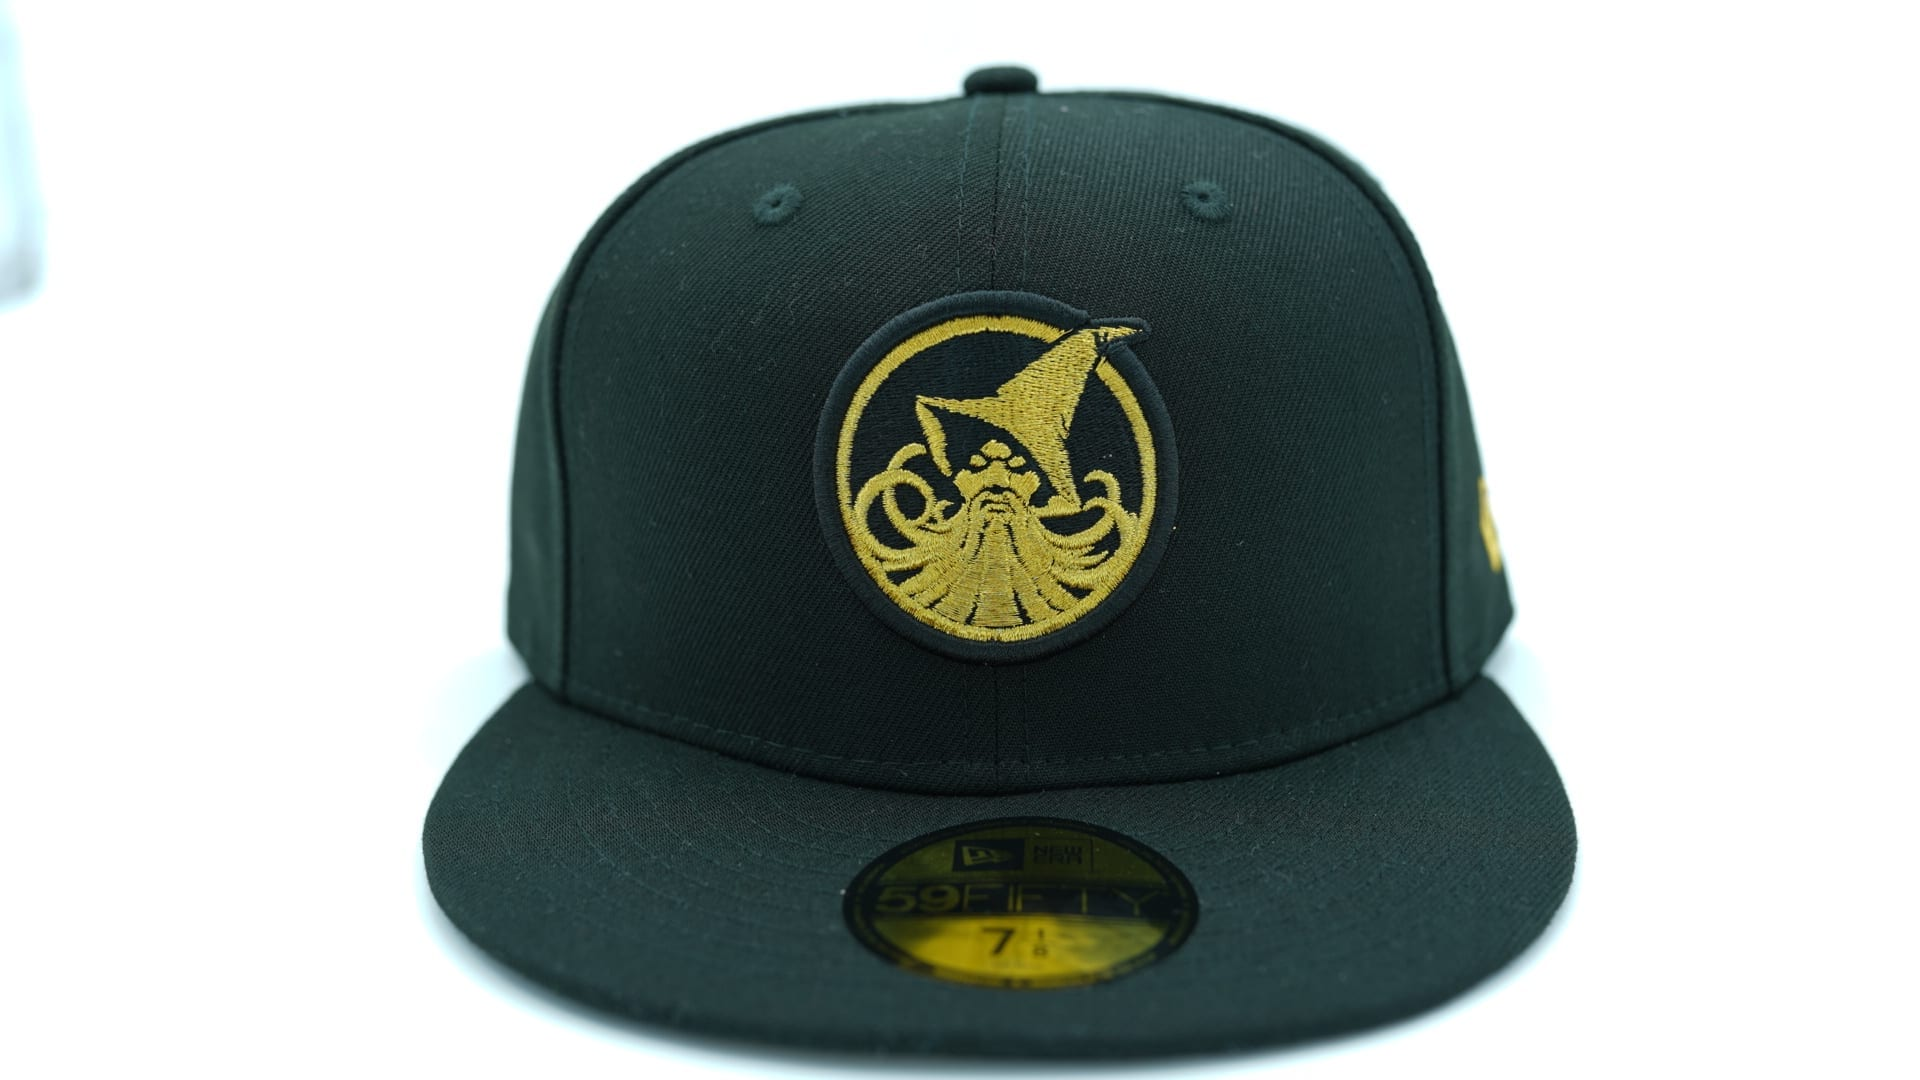 logo wheat navy 59fifty fitted baseball cap just fitteds new era 1